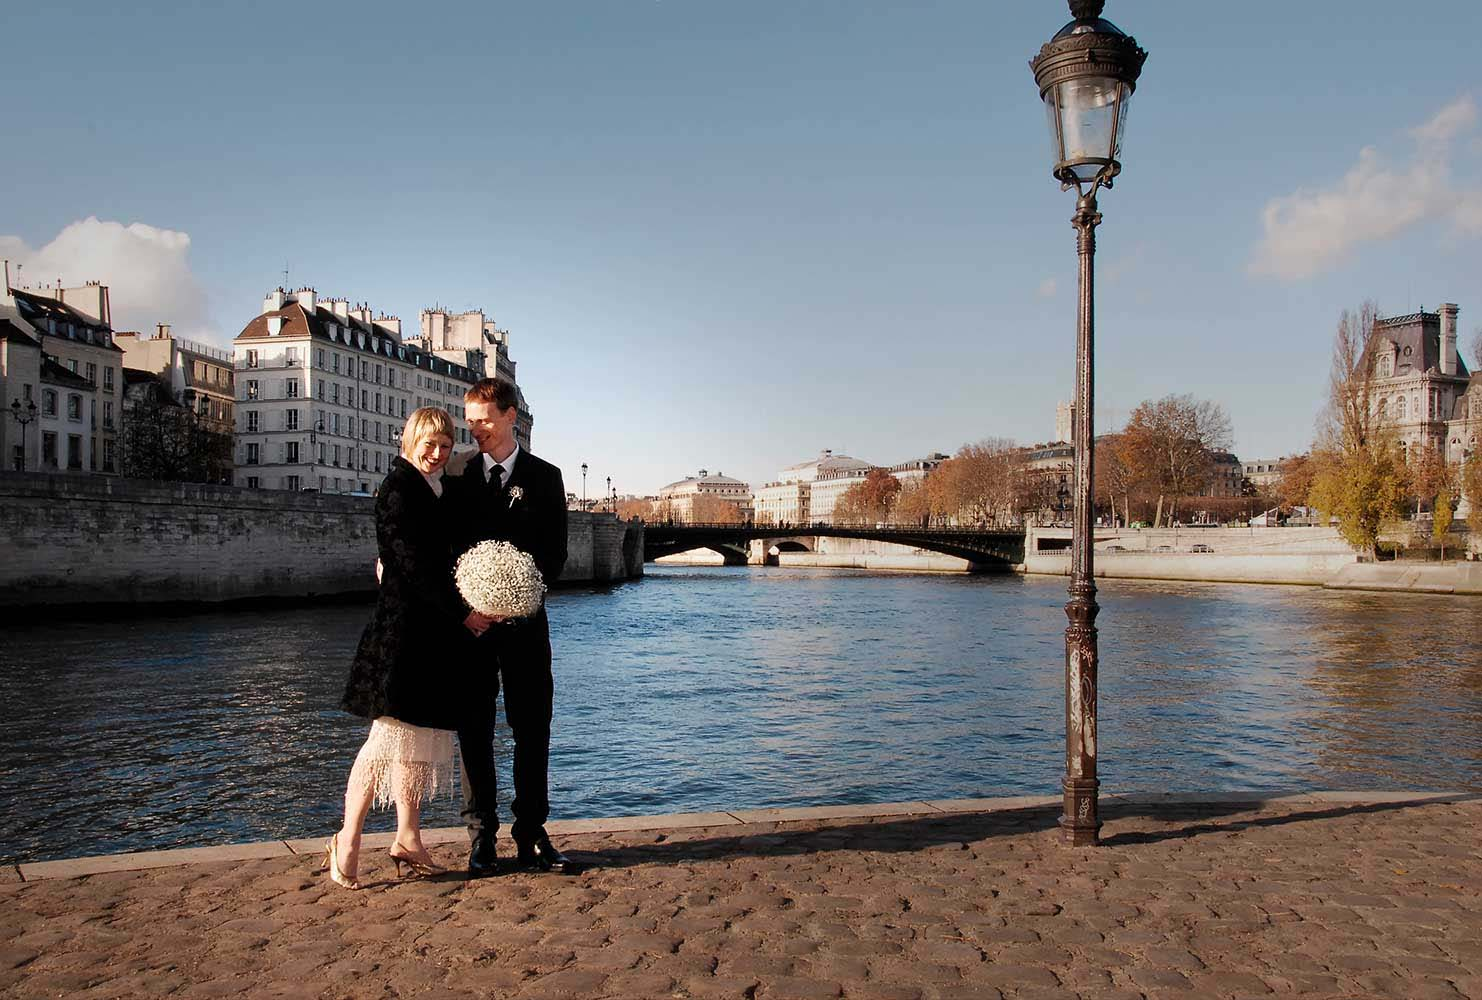 Bride and groom on Seine side, Paris, France